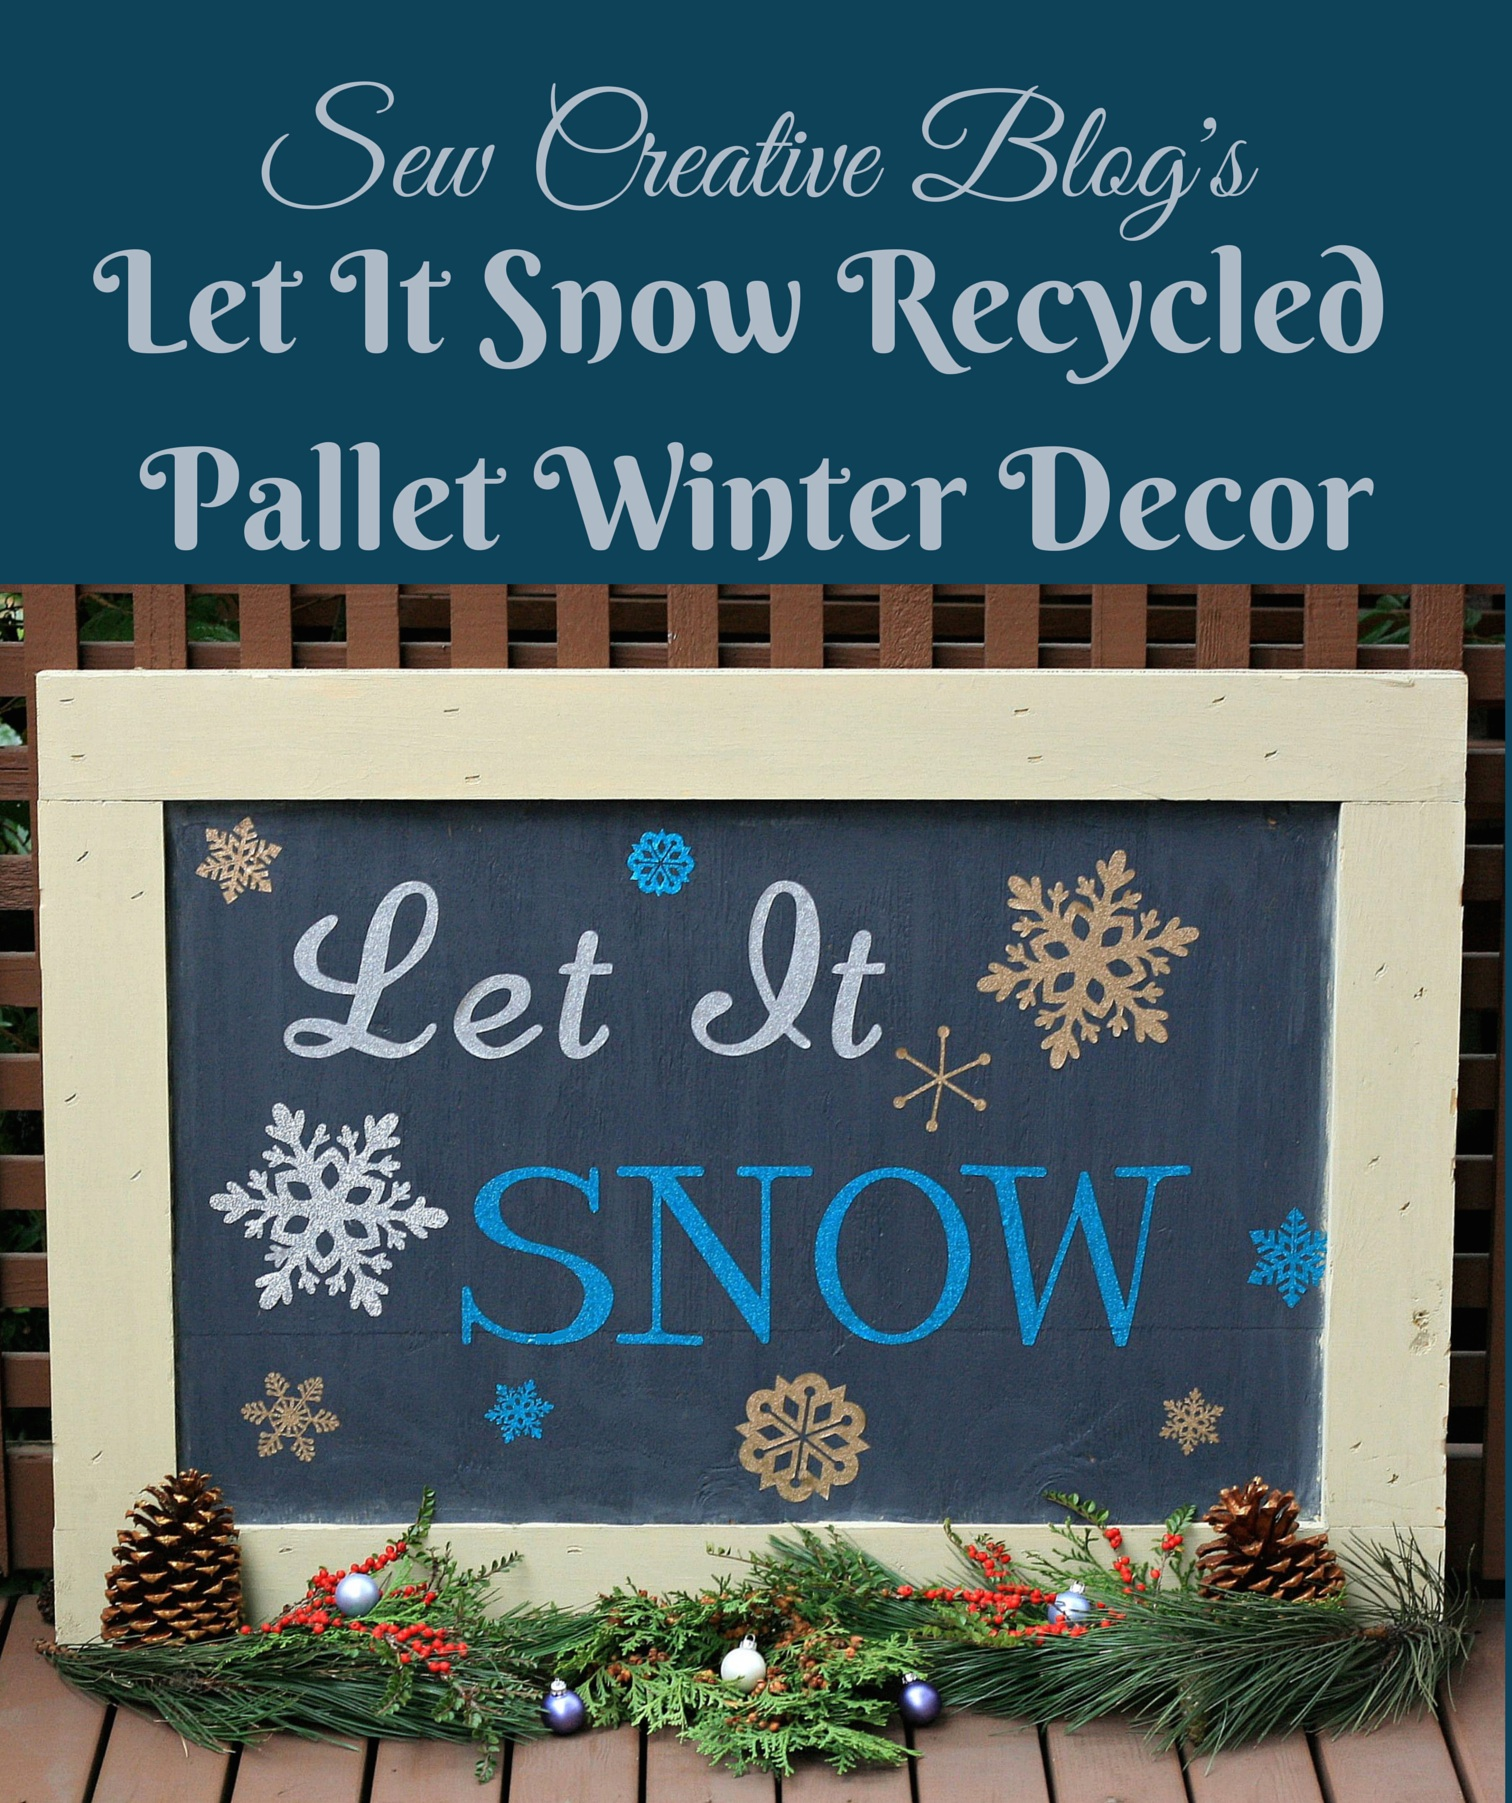 Let It Snow Recycled Pallet Winter Decor With Expressions Vinyl